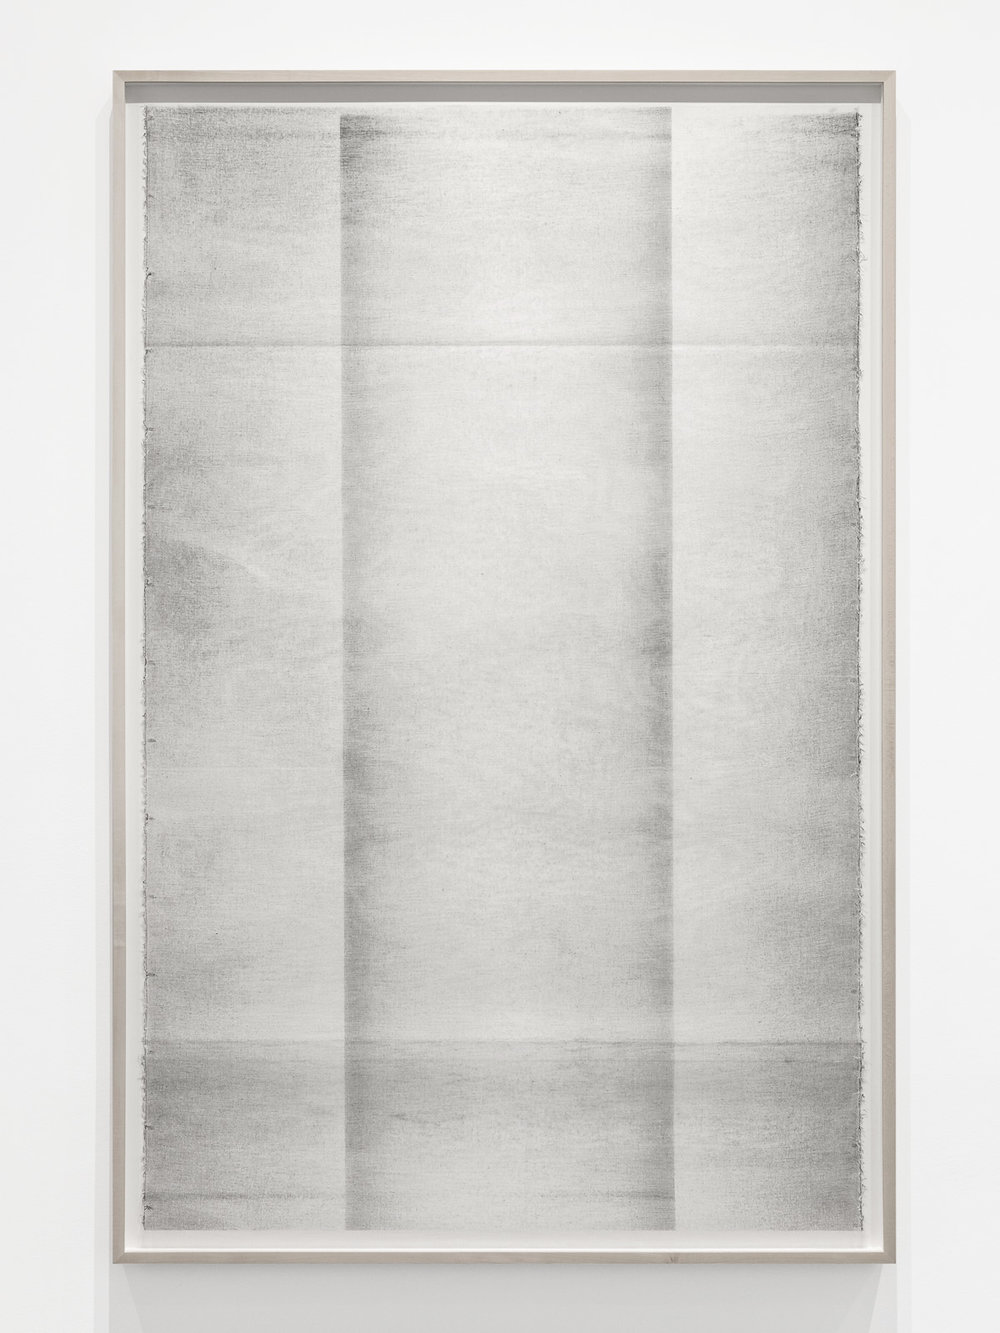 Untitled (...in and of itself) , 2017, Oil based paint, graphite and charcoal on tarlatan (starched cotton), 61 x 40 inches